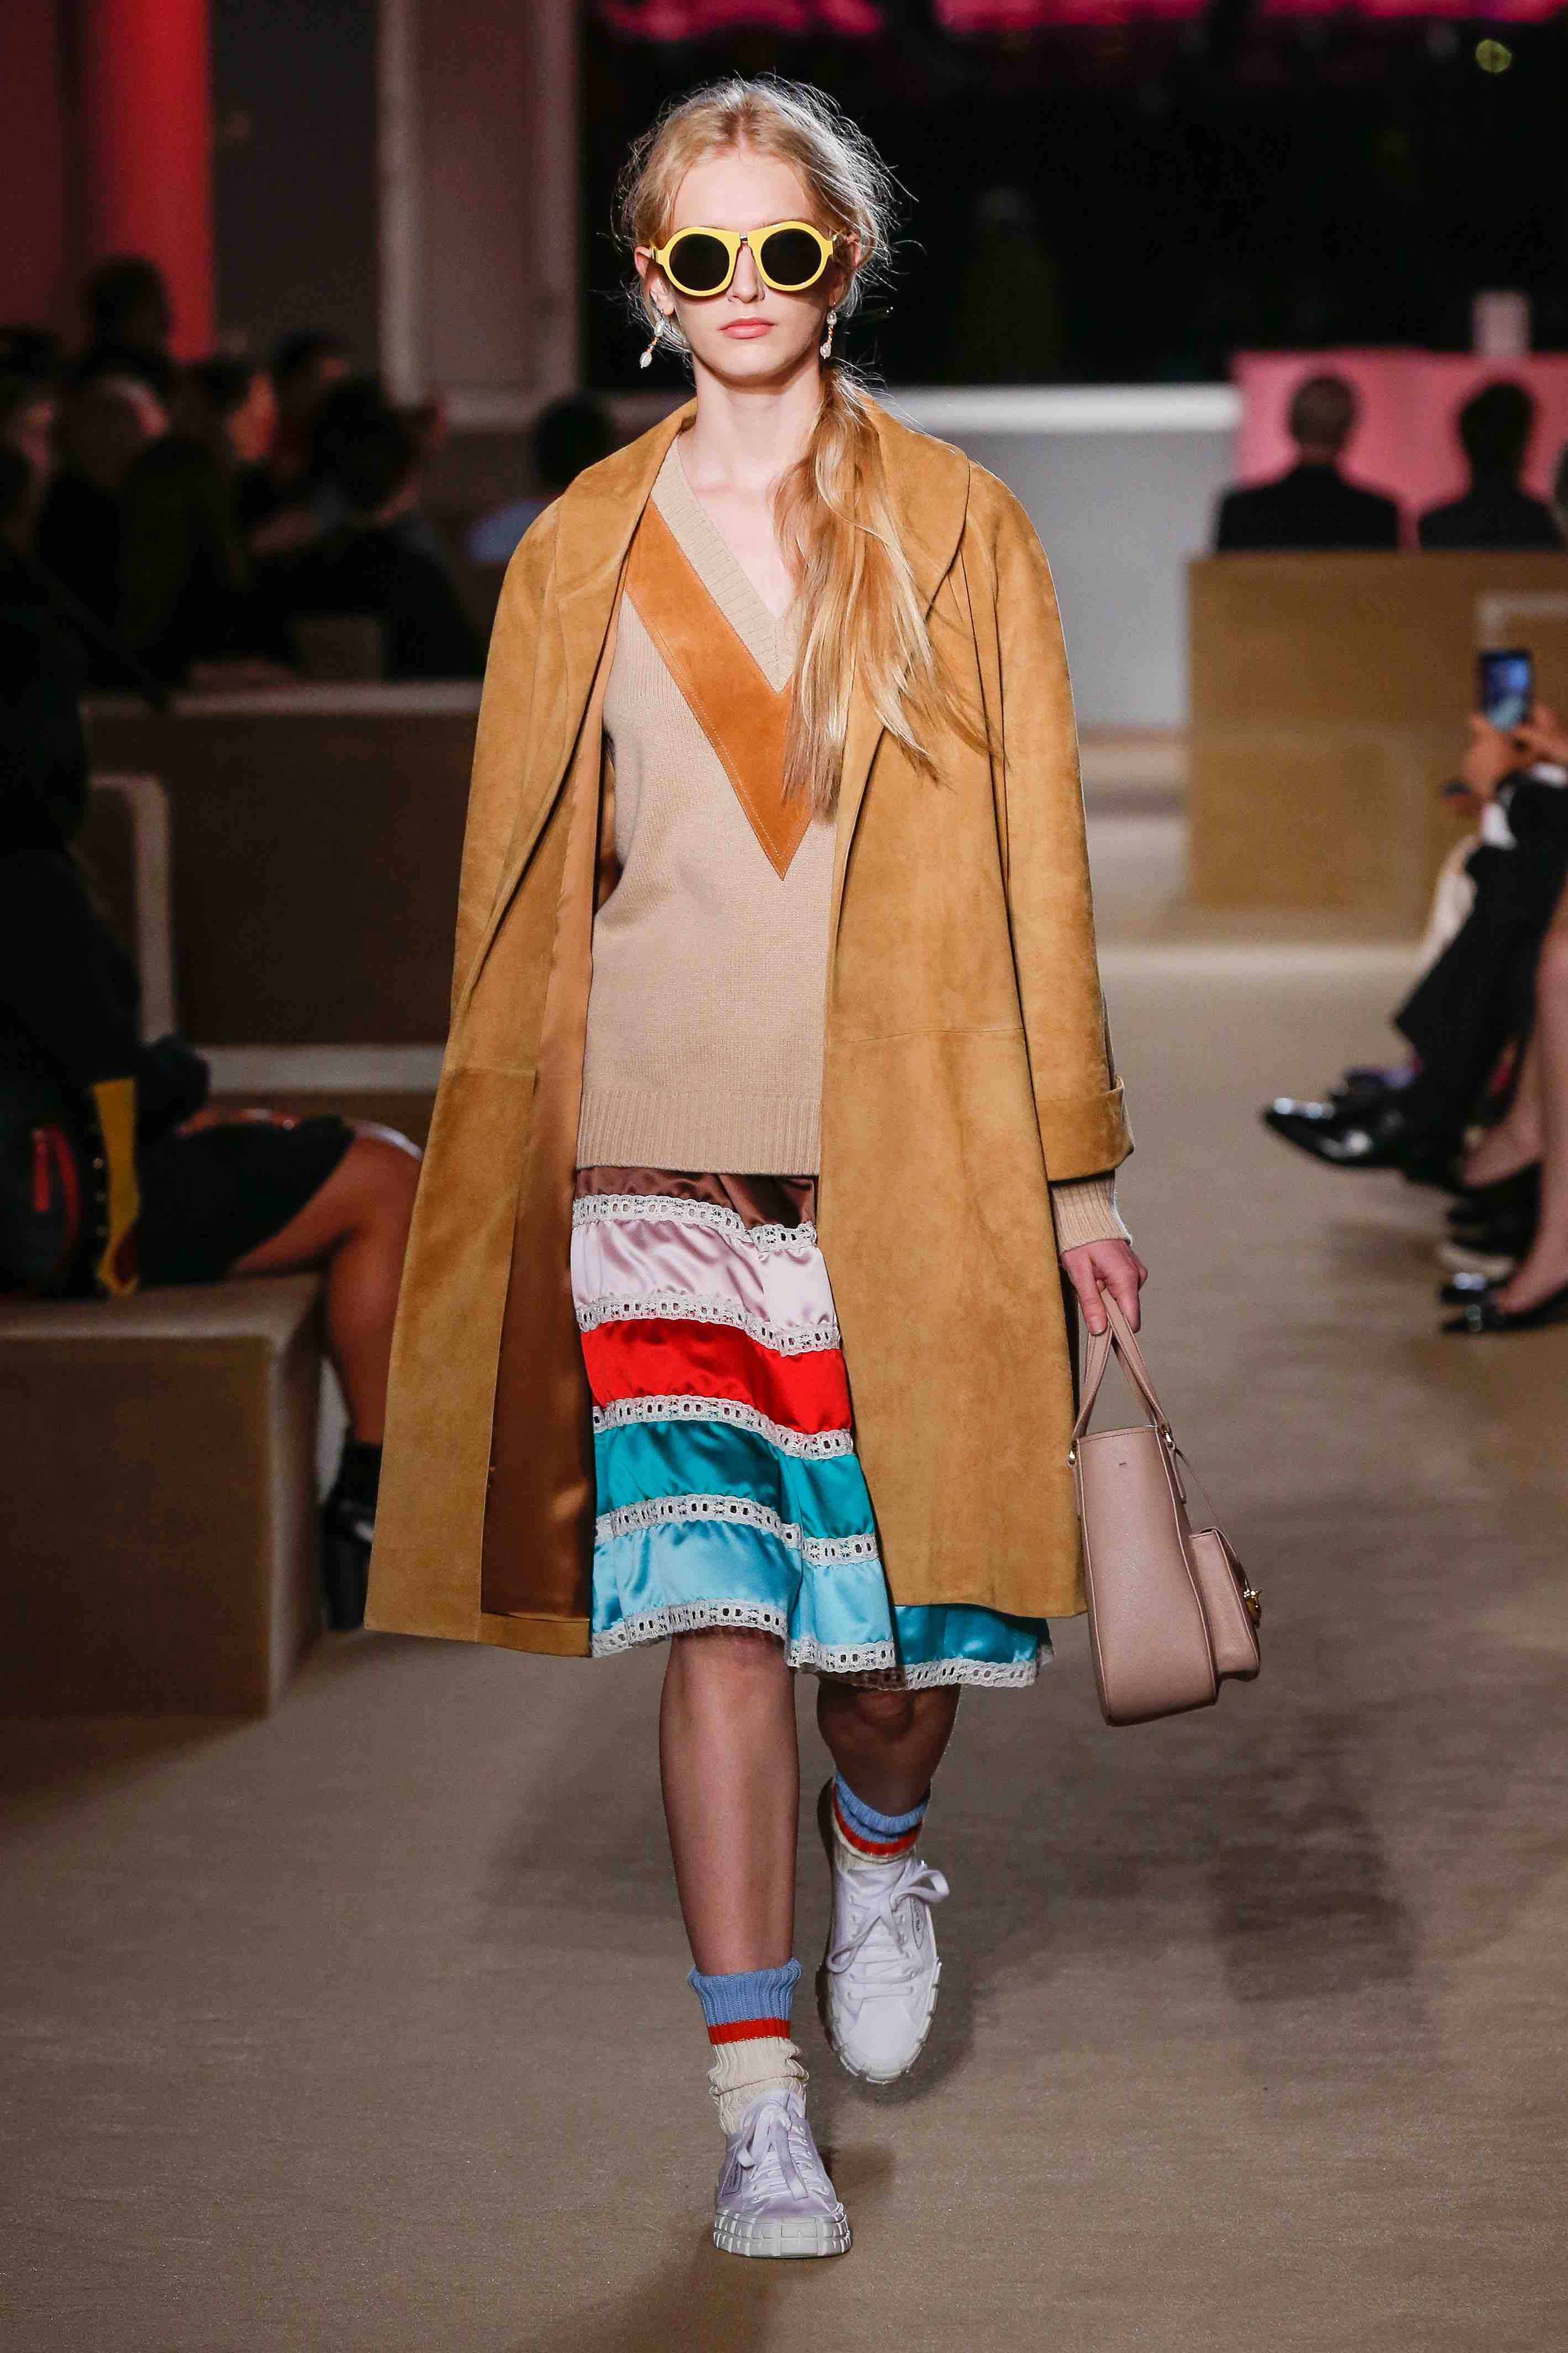 prada resort 2020 show camel coat